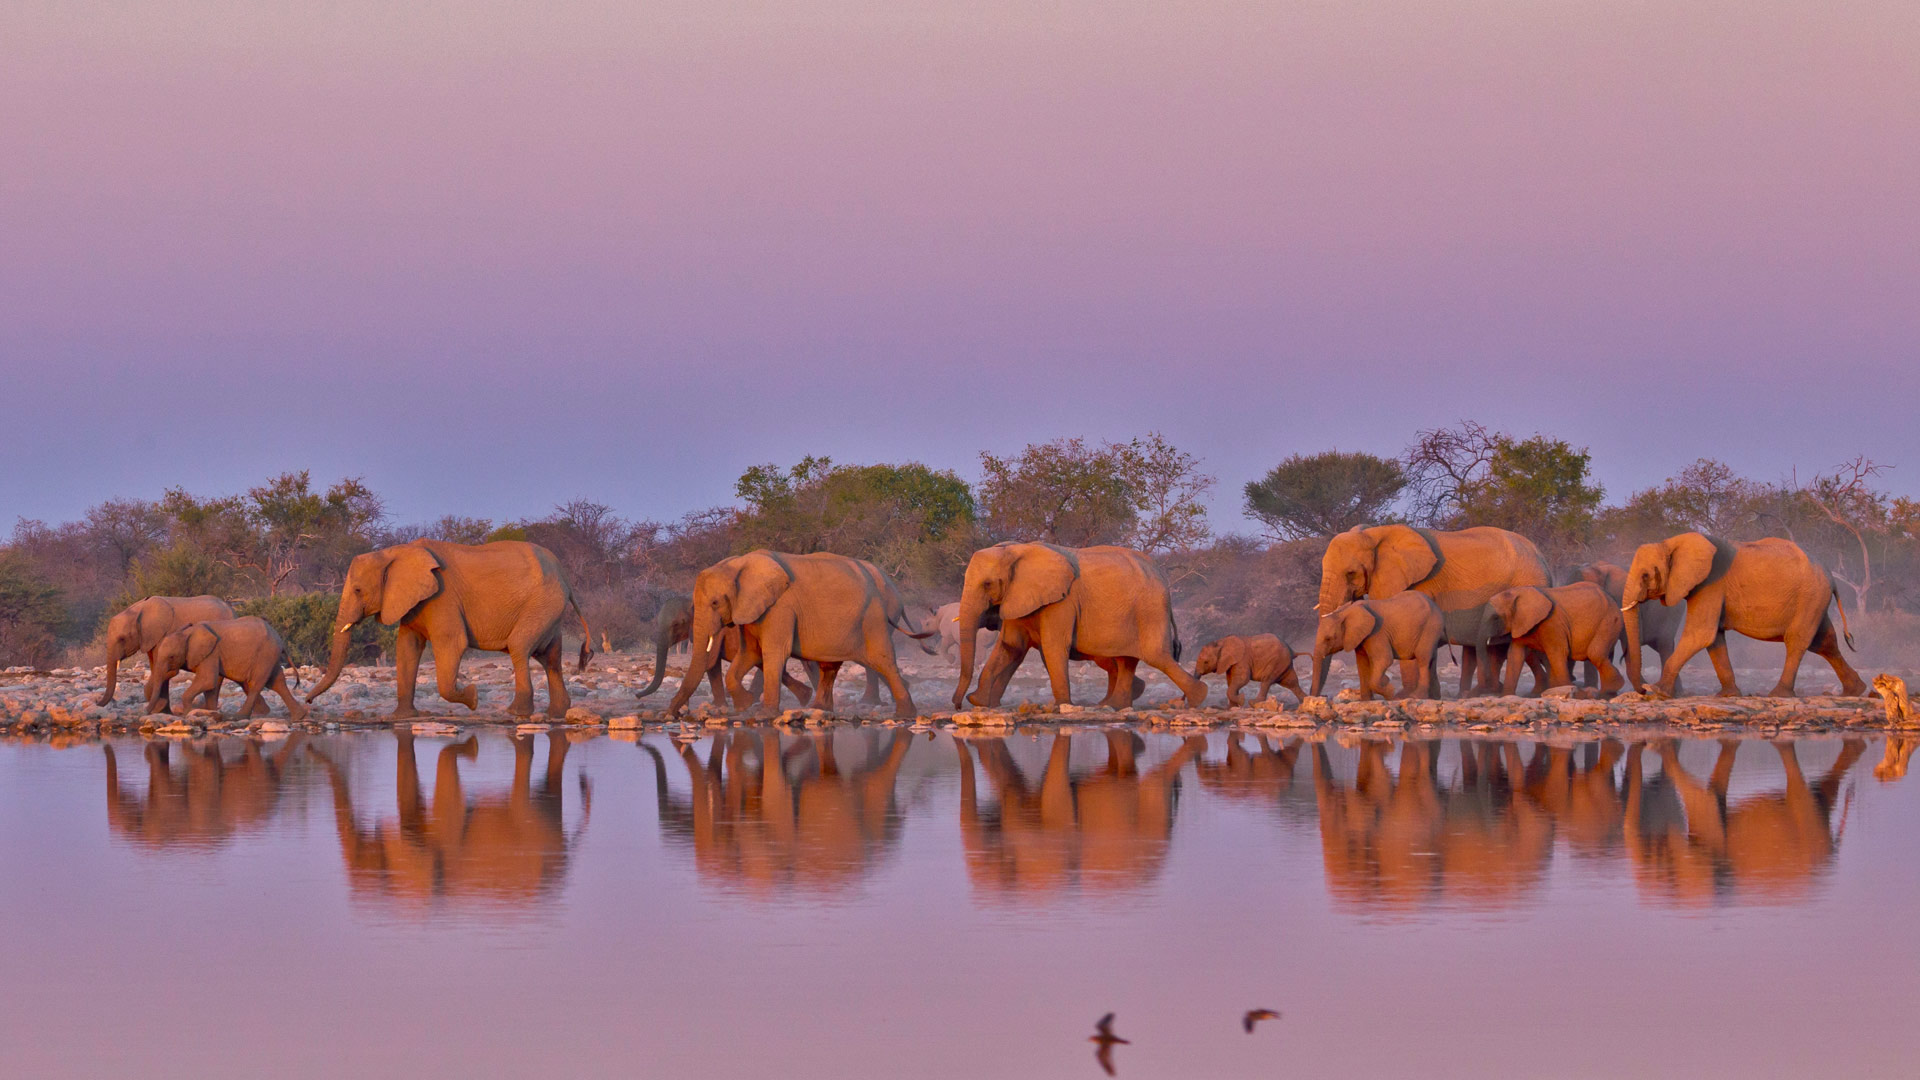 Elephant Parade Bing Wallpaper Download 1920x1080